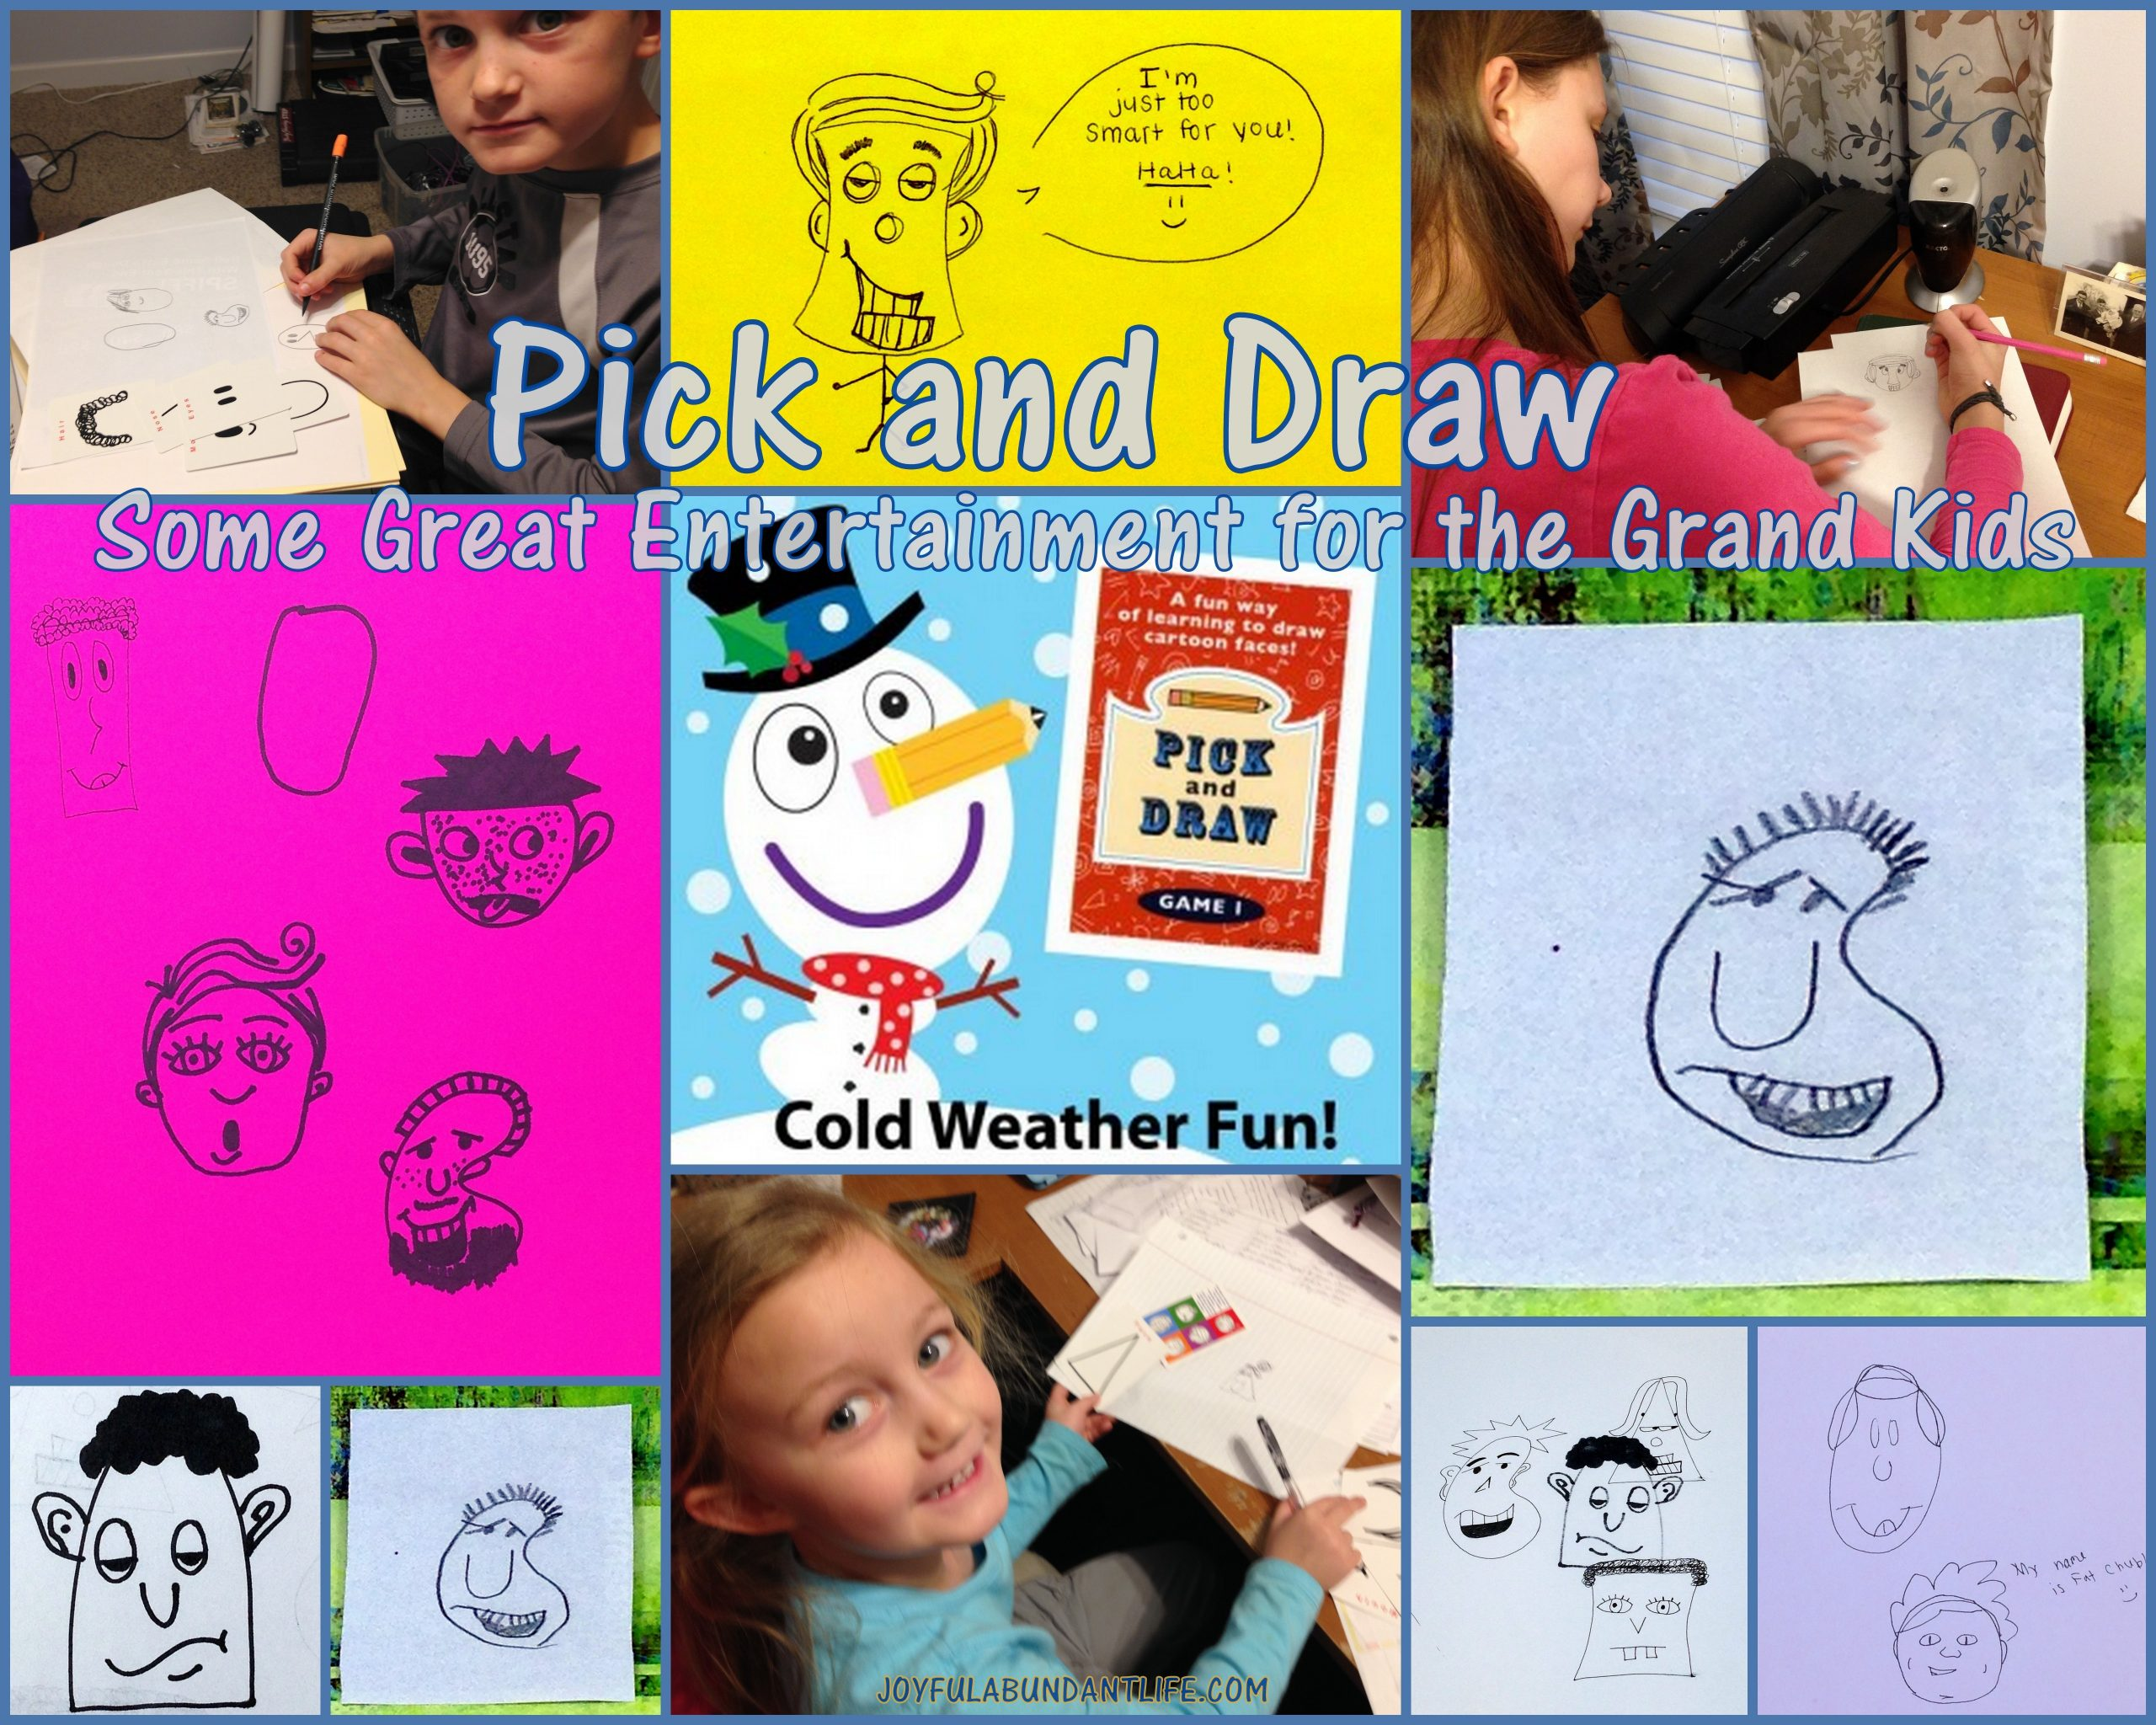 Have you tried this fun and creative game, Pick and Draw! Great entertainment for kids and grandkids